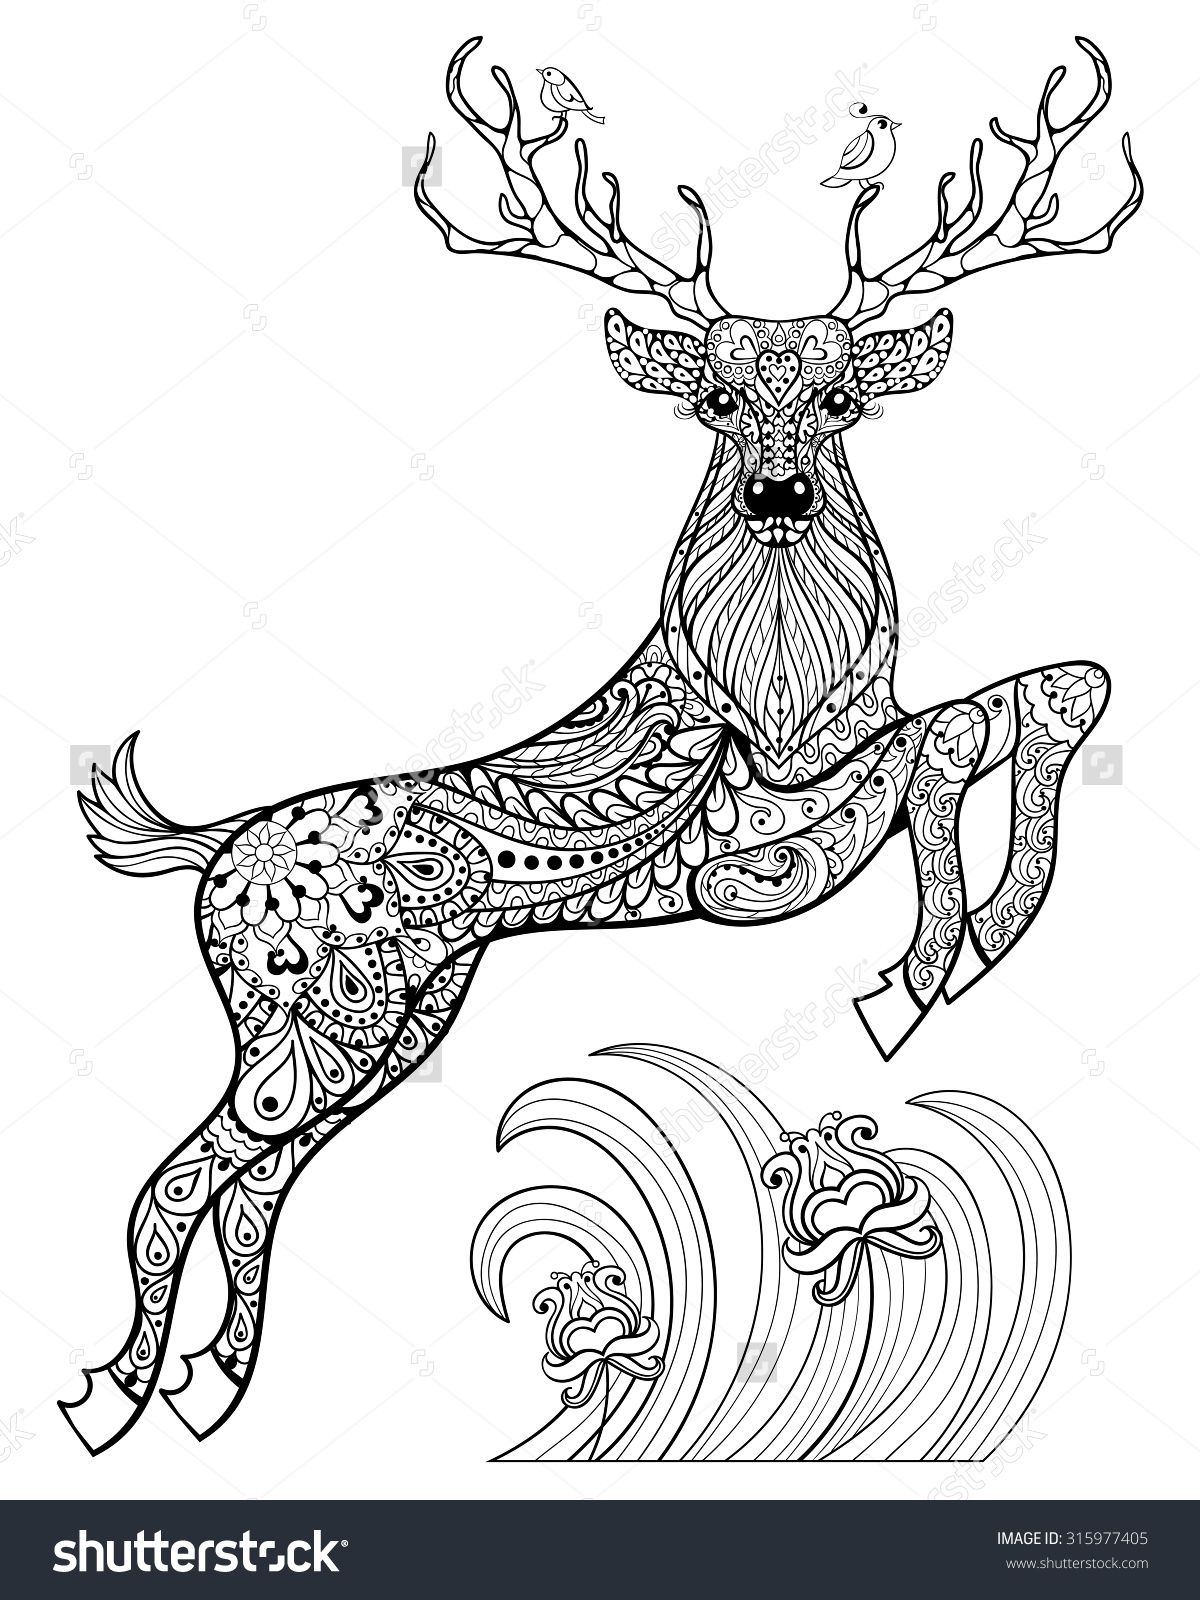 Deer Coloring Pages for Adults | ... deer-with-birds-in-the-grass ...